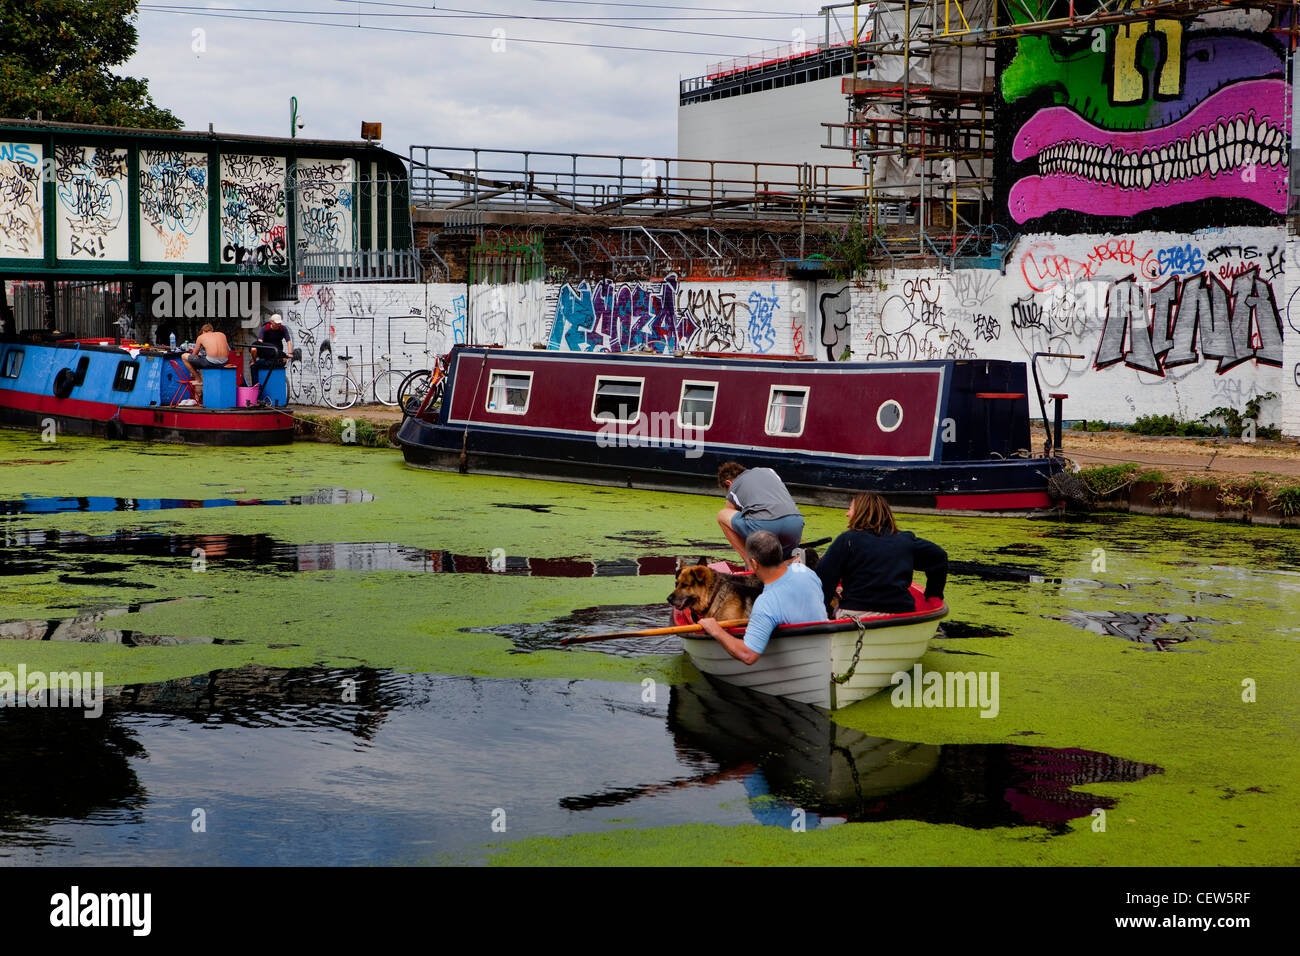 Rowing boat trip on the River Lea, Hackney Wick, London - Stock Image